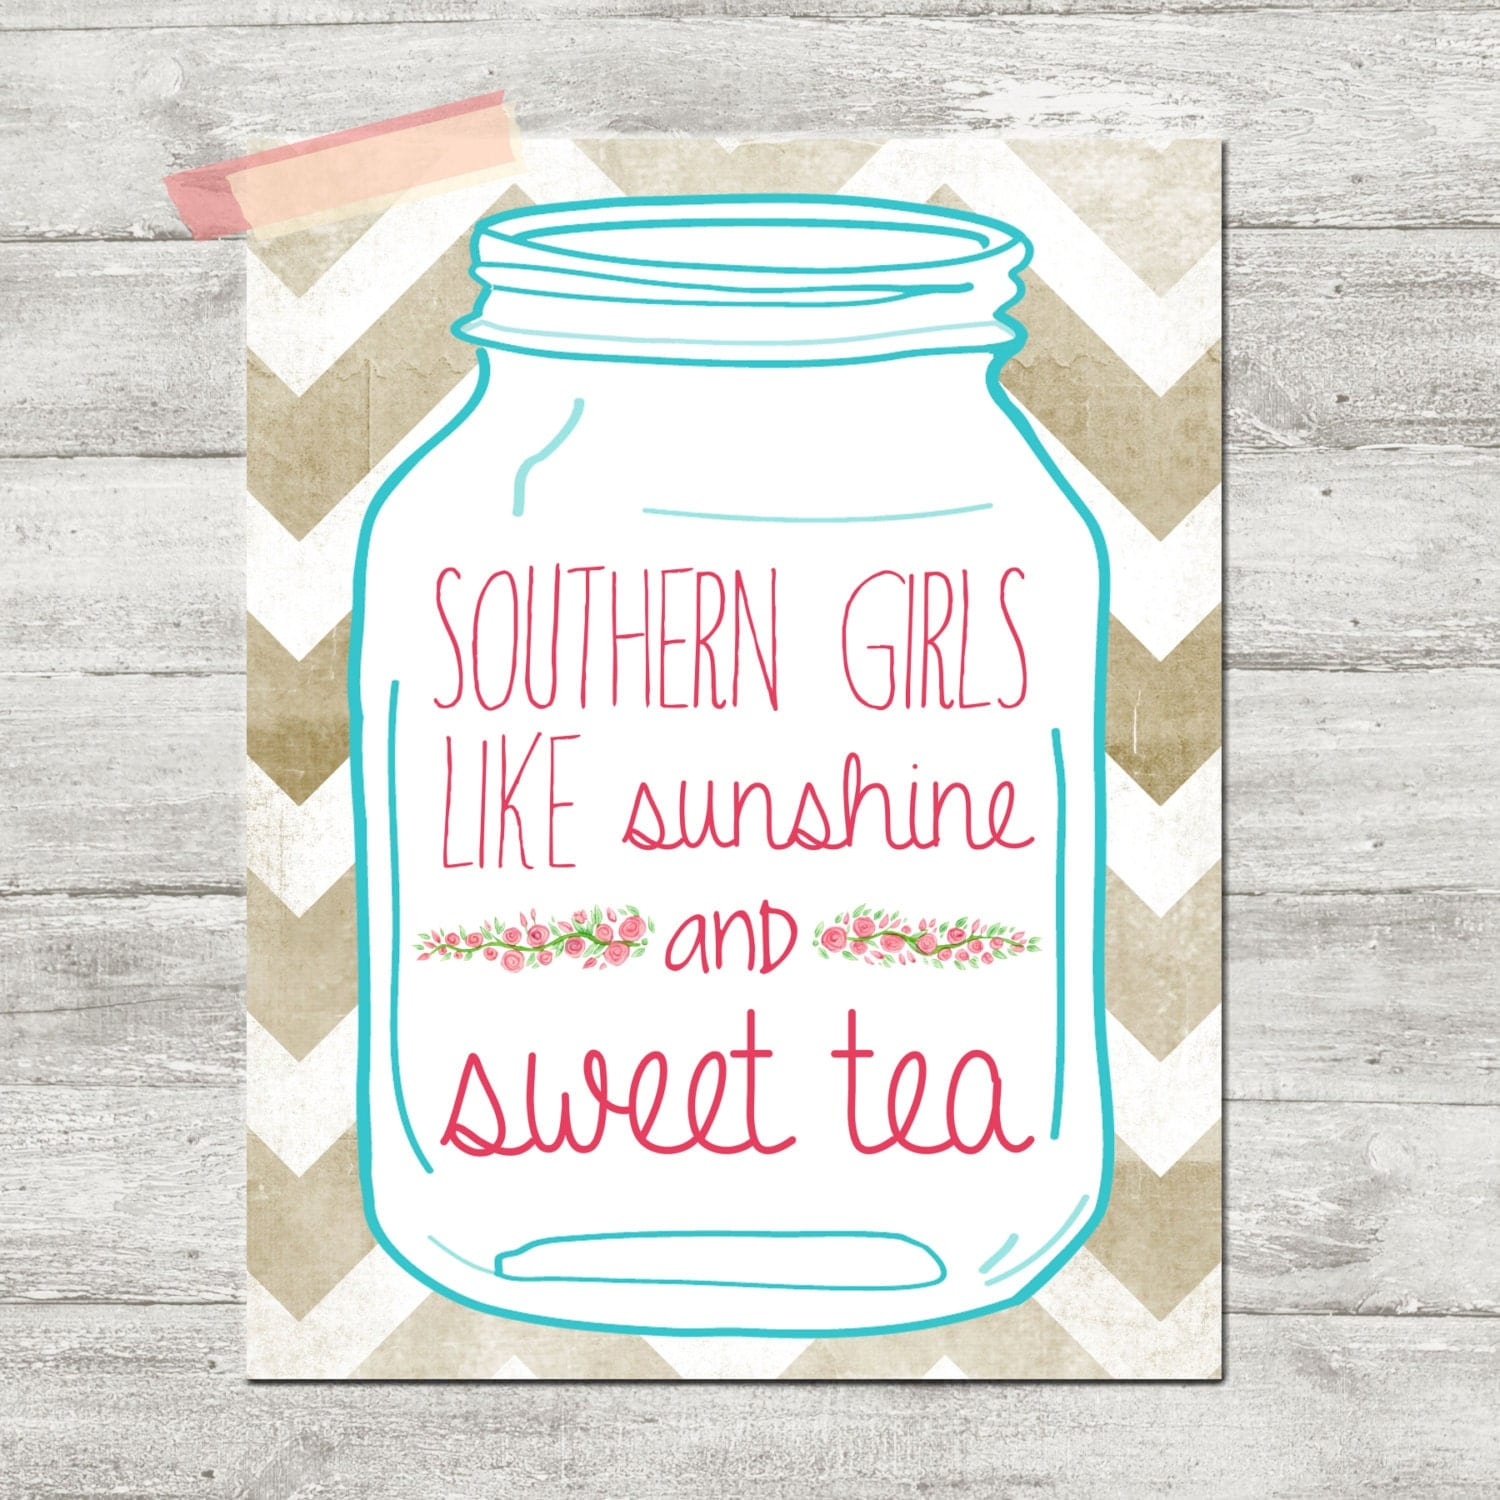 Southern Girl Sayings And Quotes: Southern Girl Quotes. QuotesGram